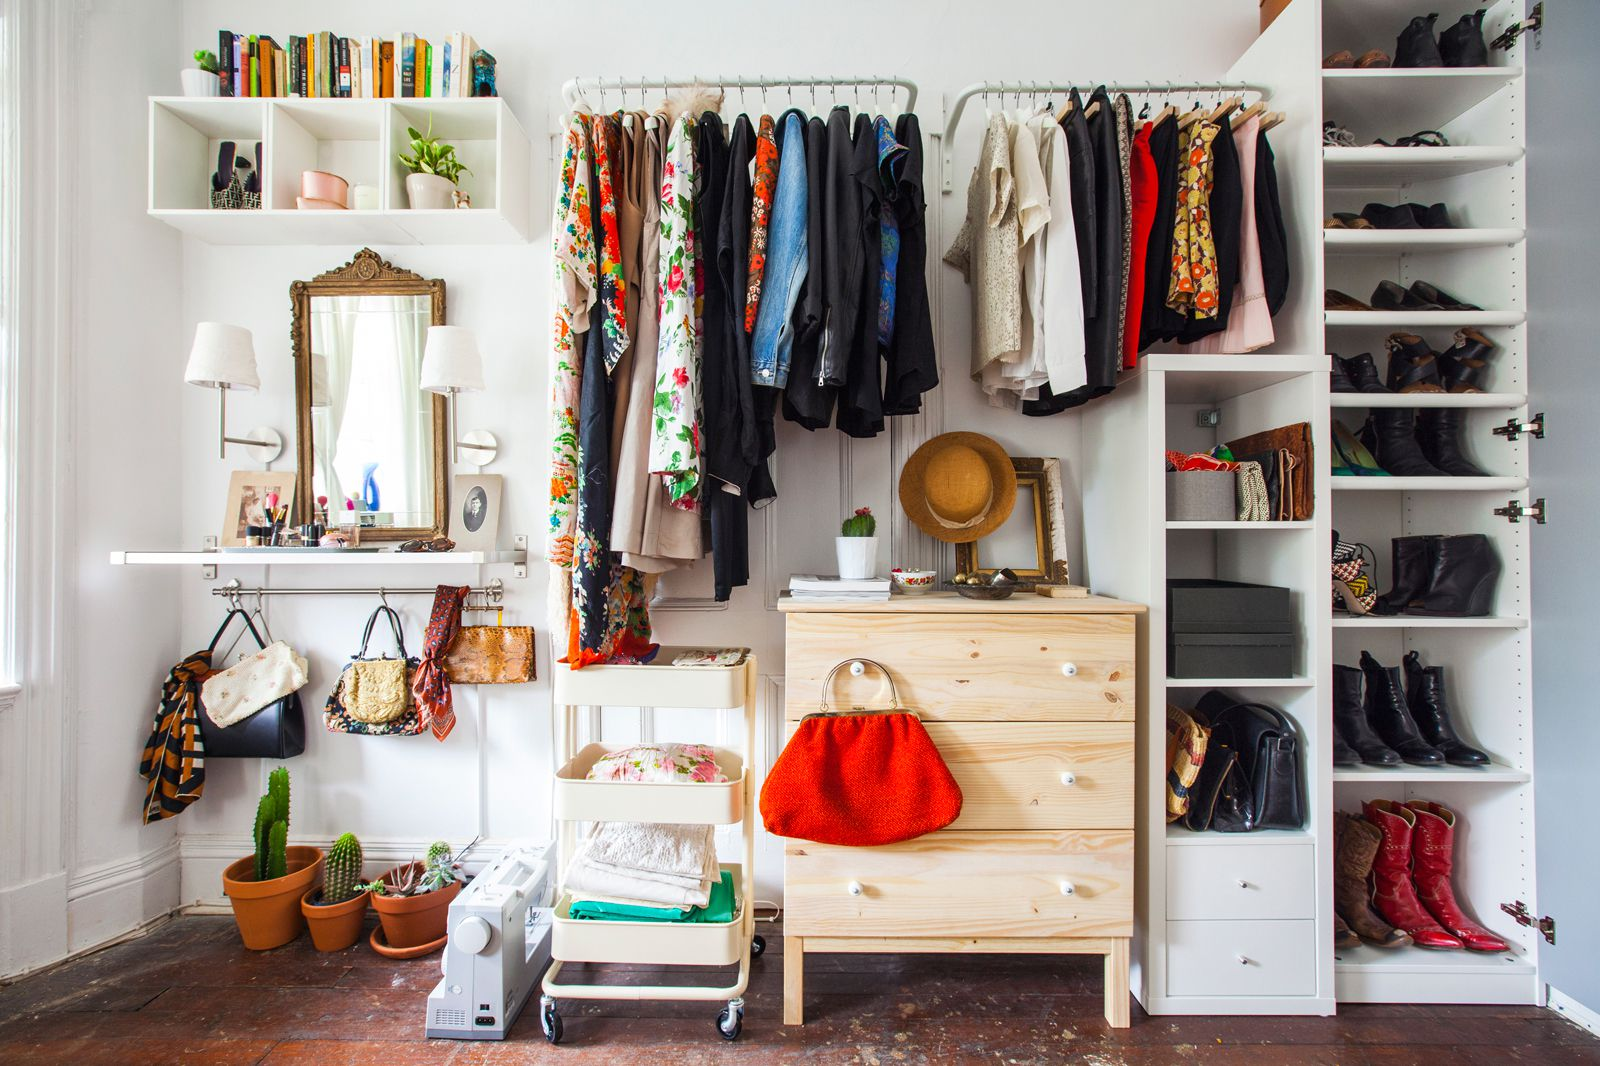 15 IKEA Storage Hacks: Space Savers for Small Bedrooms